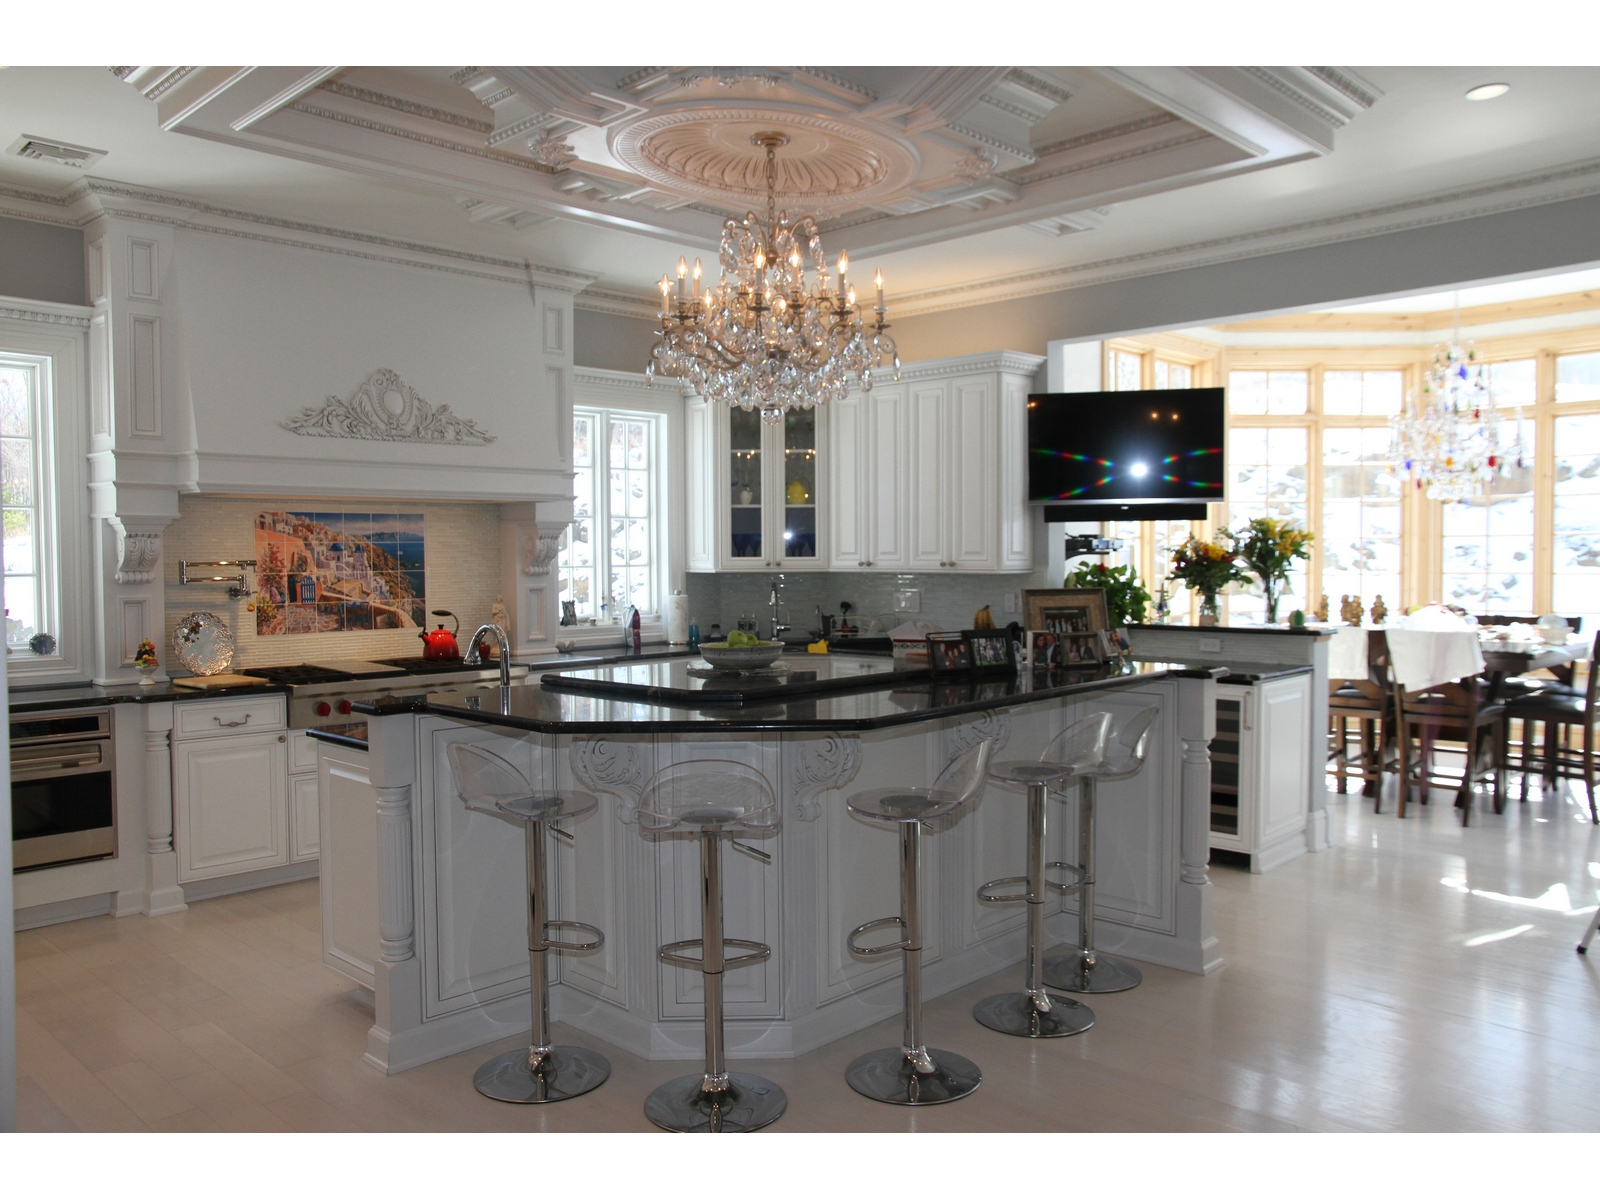 Long Island Kitchen And Bath Inc